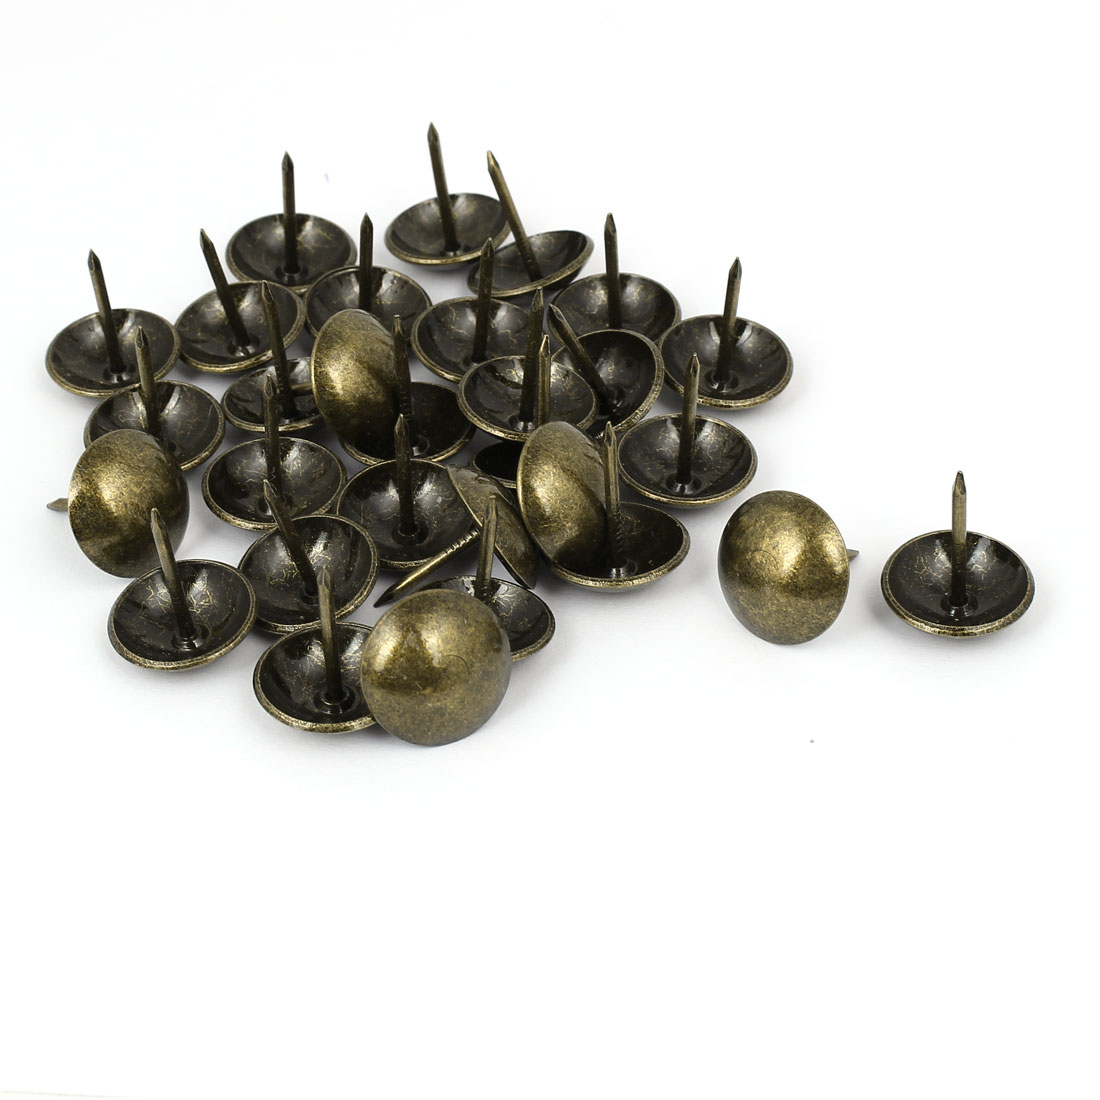 Household Metal Domed Head Upholstery Tack Nail Bronze Tone 19mm Dia 30pcs